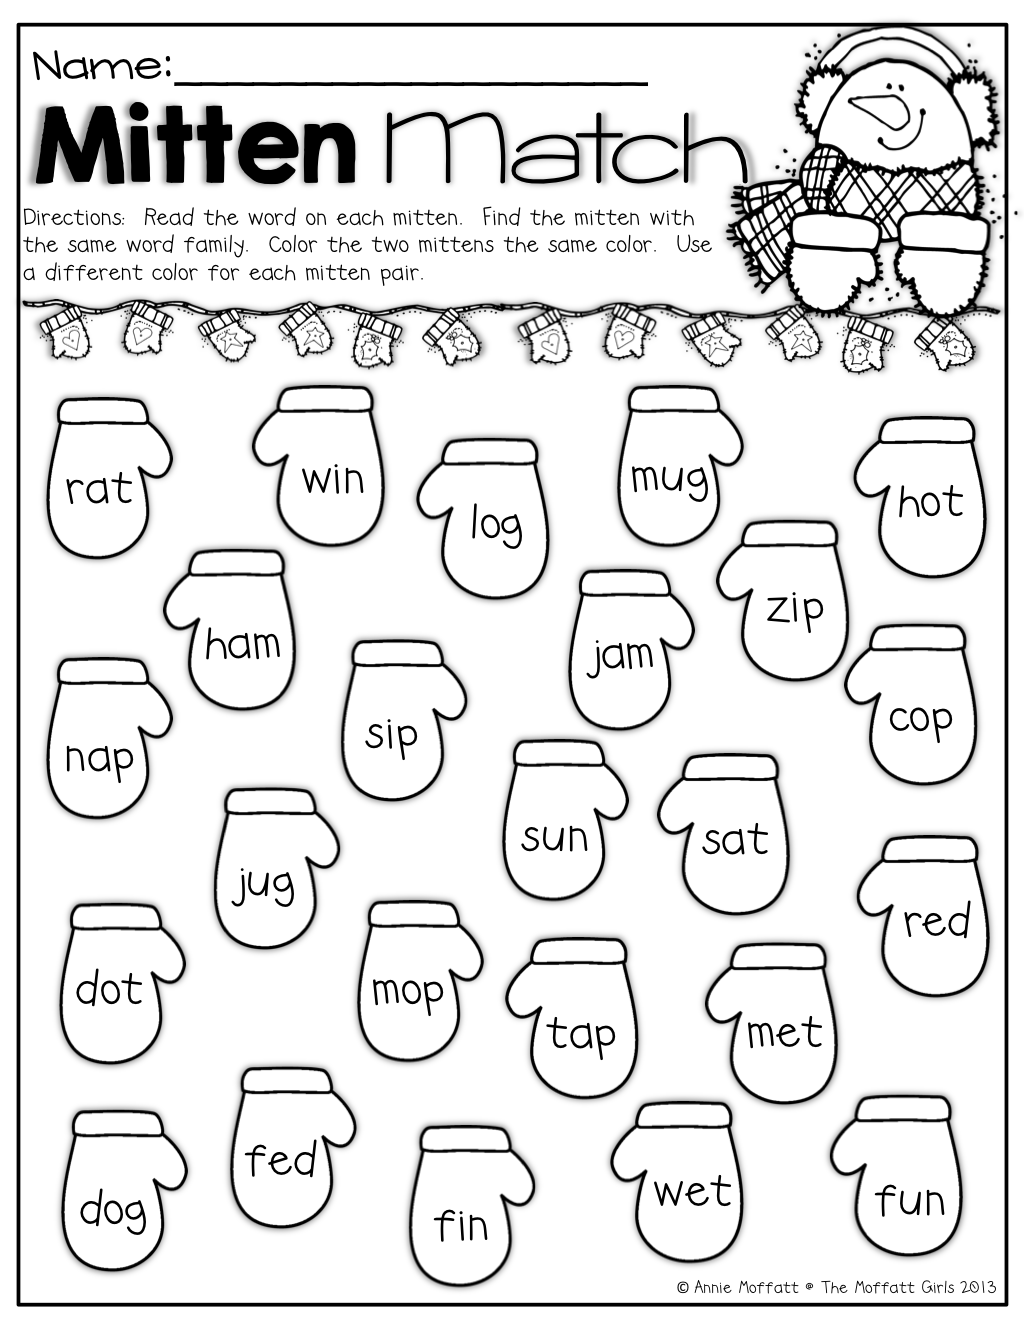 Mitten Match Color The Pair Of Mittens With The Same Word Family The Same Color Such A Fun